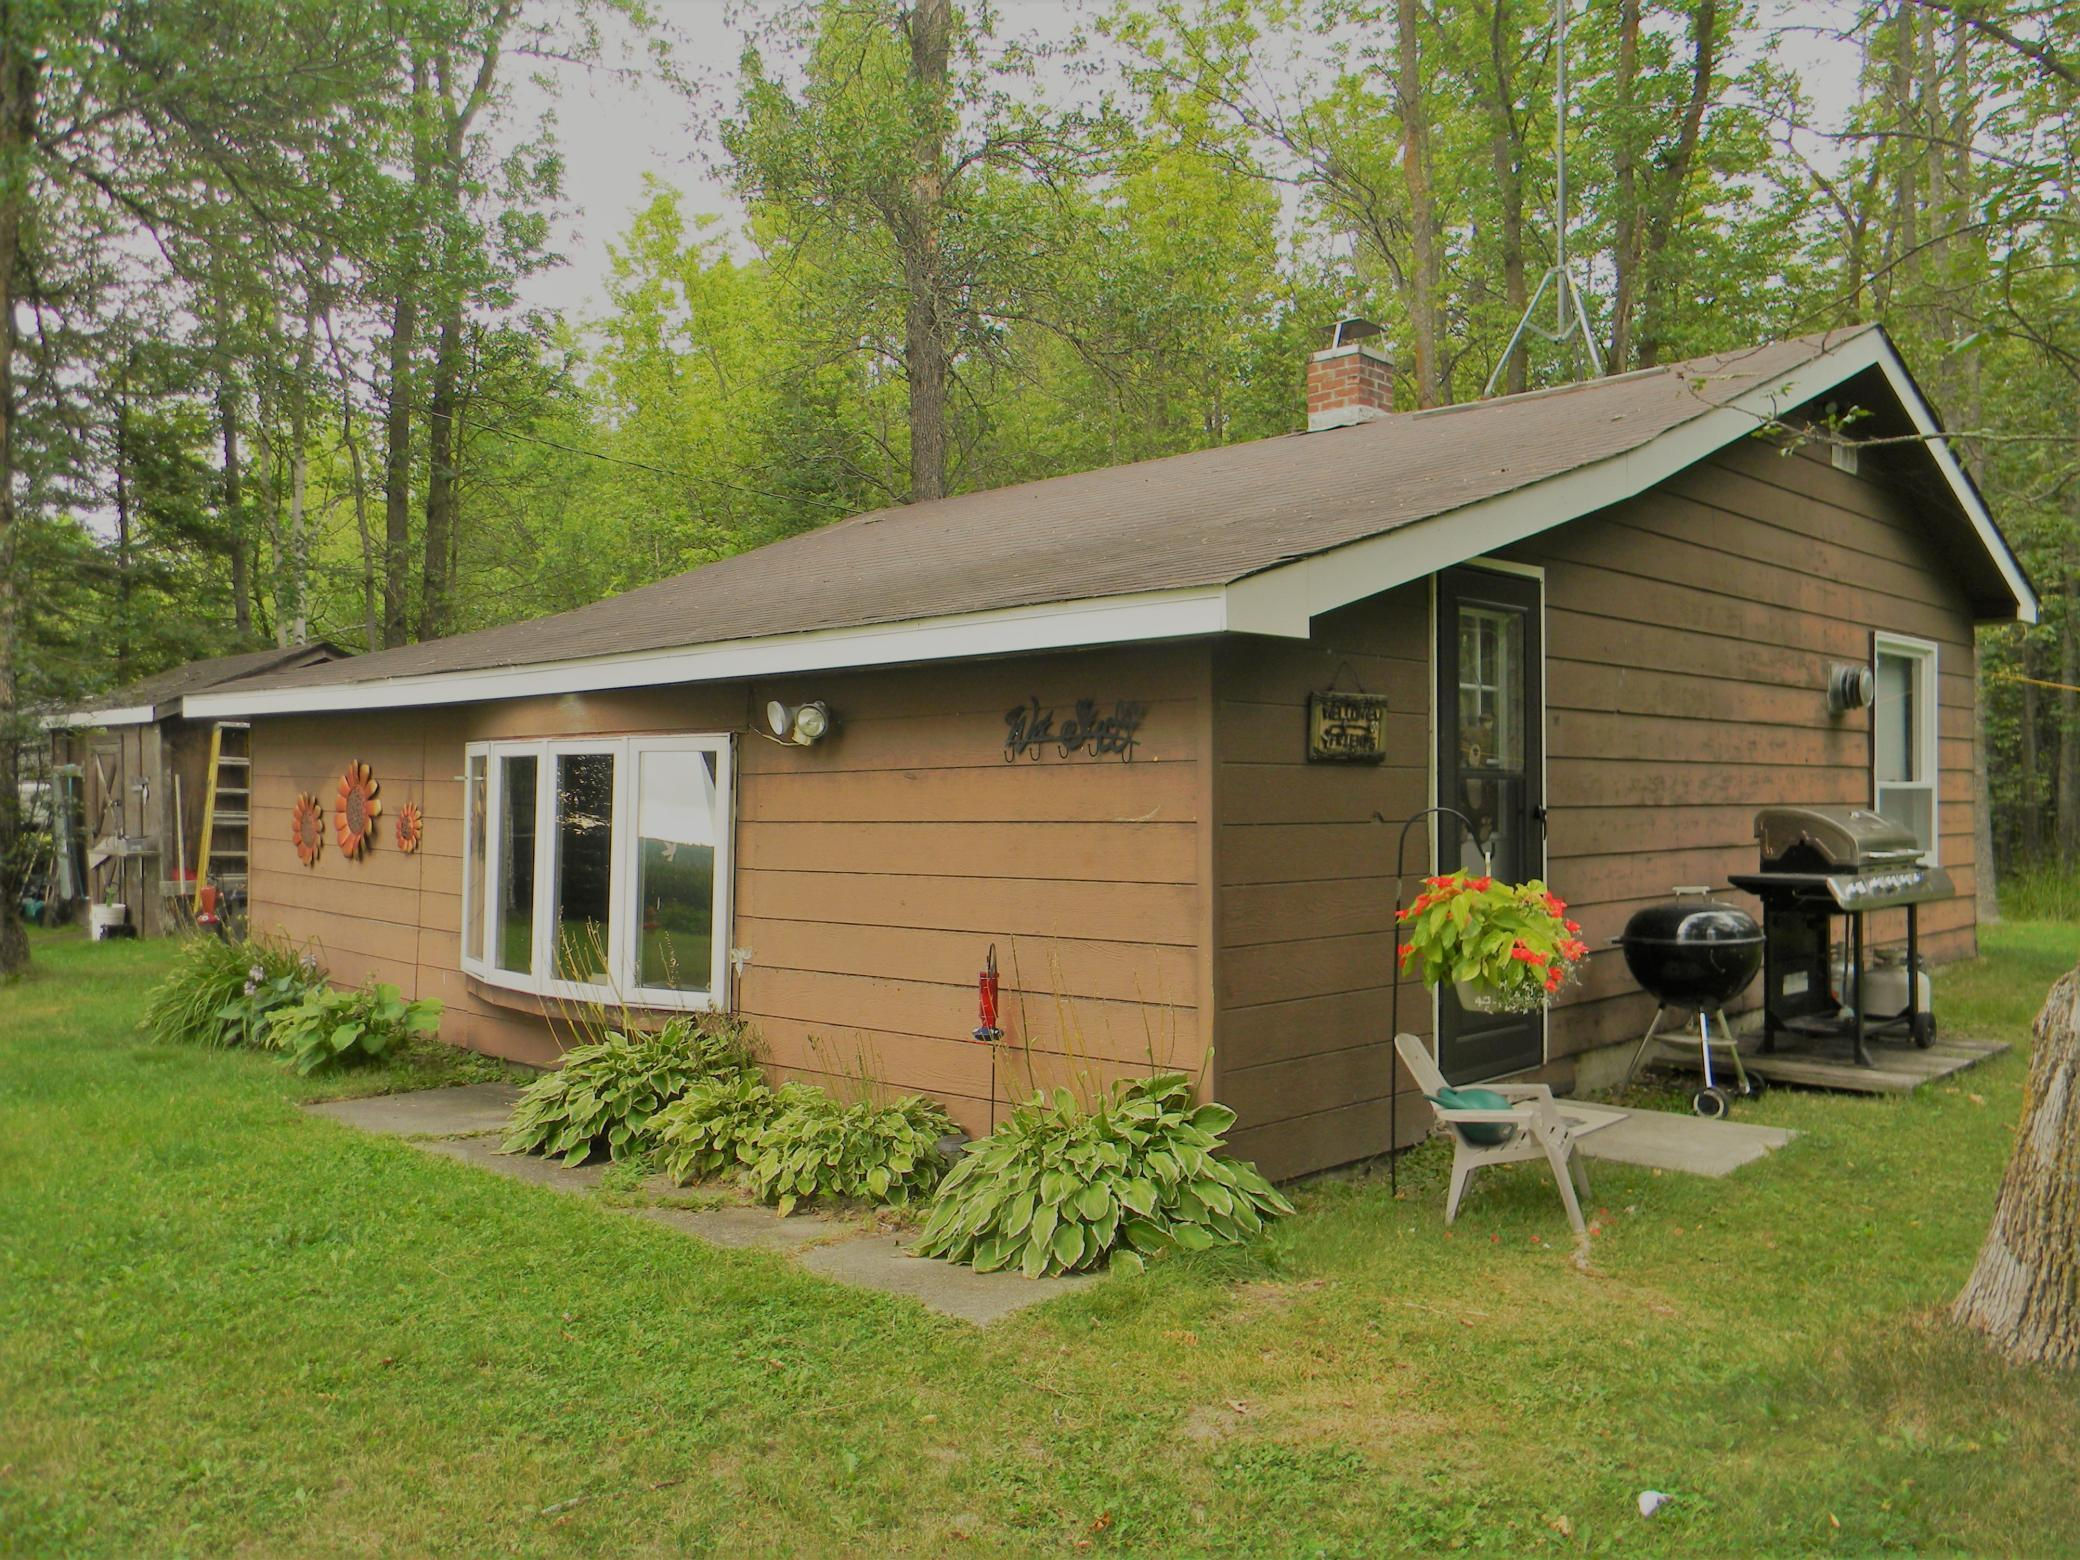 Look at this steal of a deal! A cozy cabin on Jessie Lake! Open concept cabin with 2 bedrooms sleeping 6. Property has 120 ft of private shoreline giving way to beautiful sunset views. Spend your days, weeks, months here. Gather at the water's edge and watch the weather roll by after a day of fishing. This property is meant for relaxing. Please note, property is served by an Artesian well. Welcome to Northern MN.